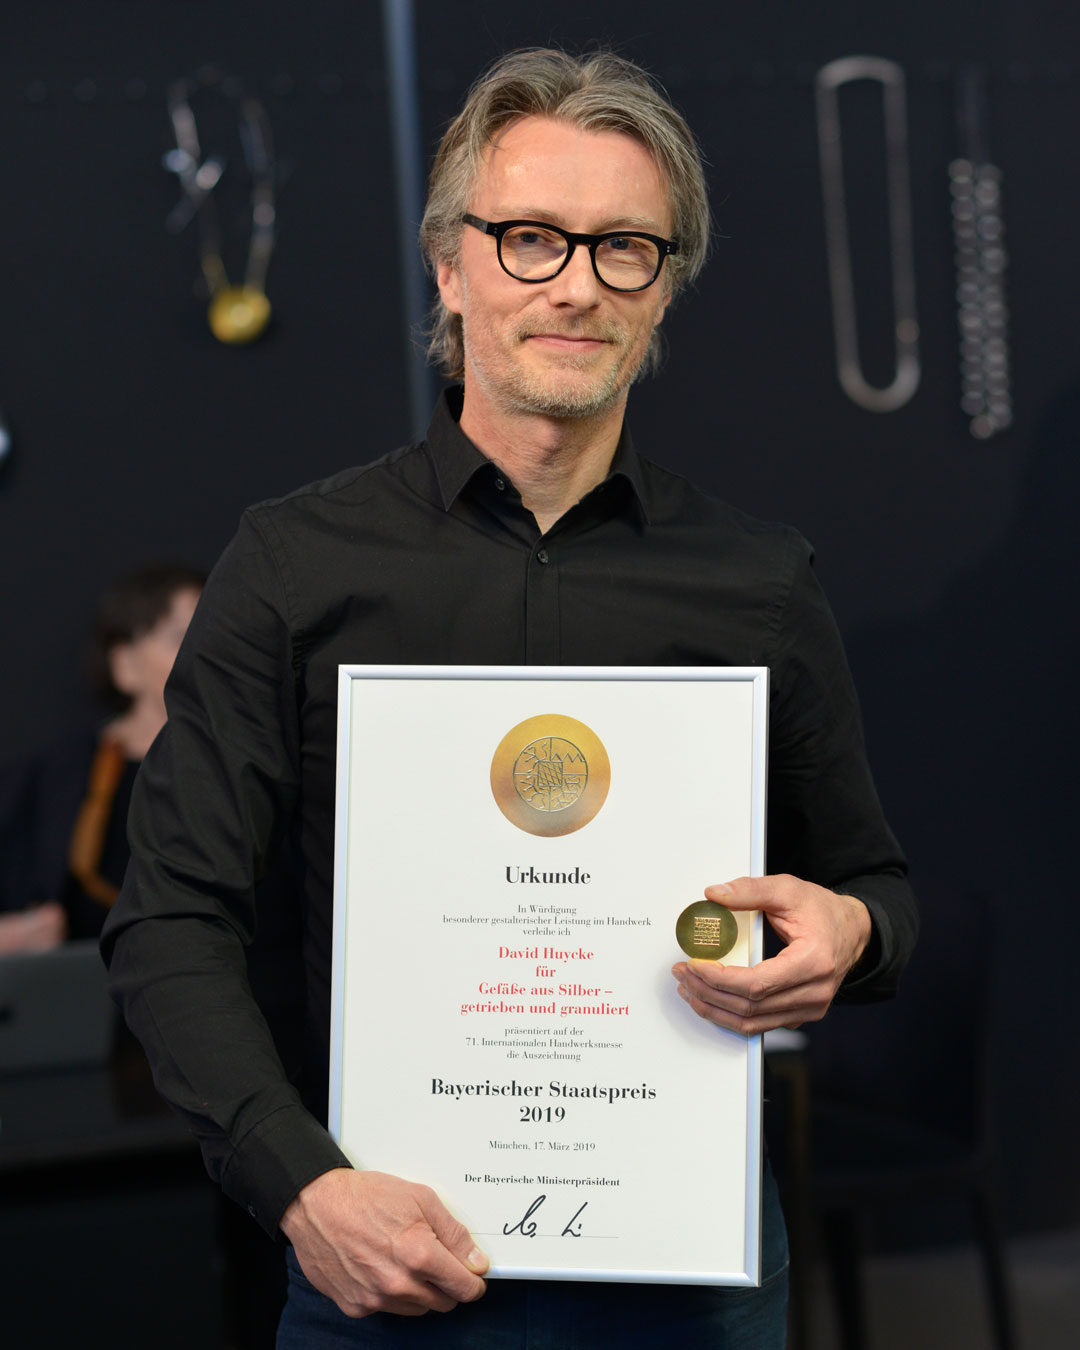 David Huycke wins the Bavarian State Prize in 2019